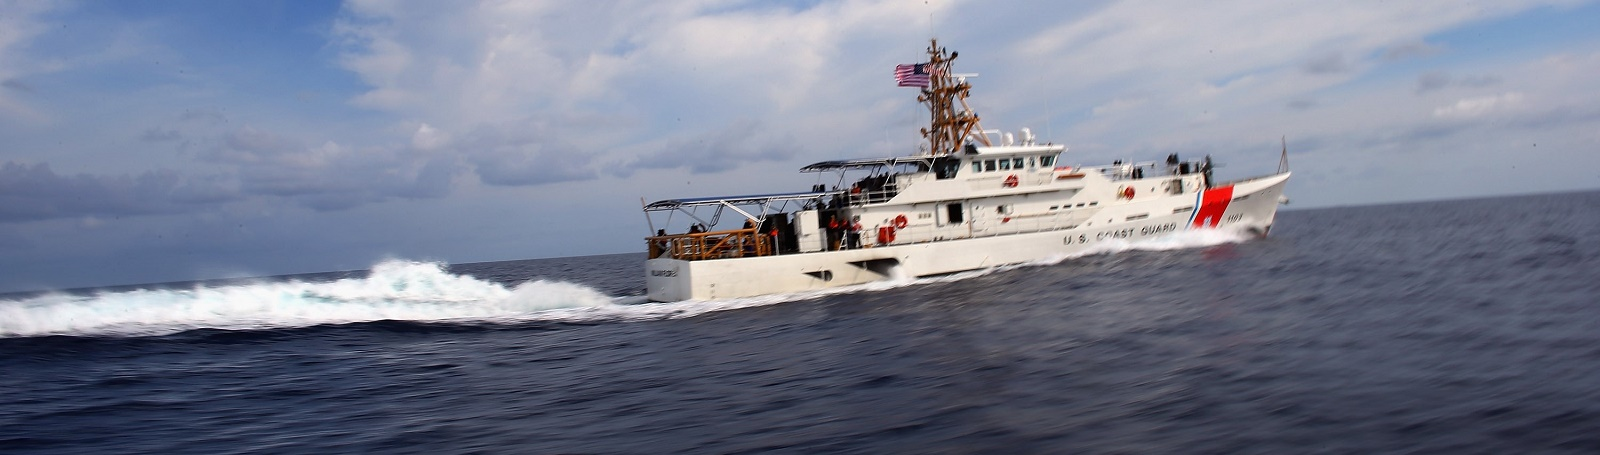 USCG Cutter William Flores (Photo: Joe Raedle/Getty Images)